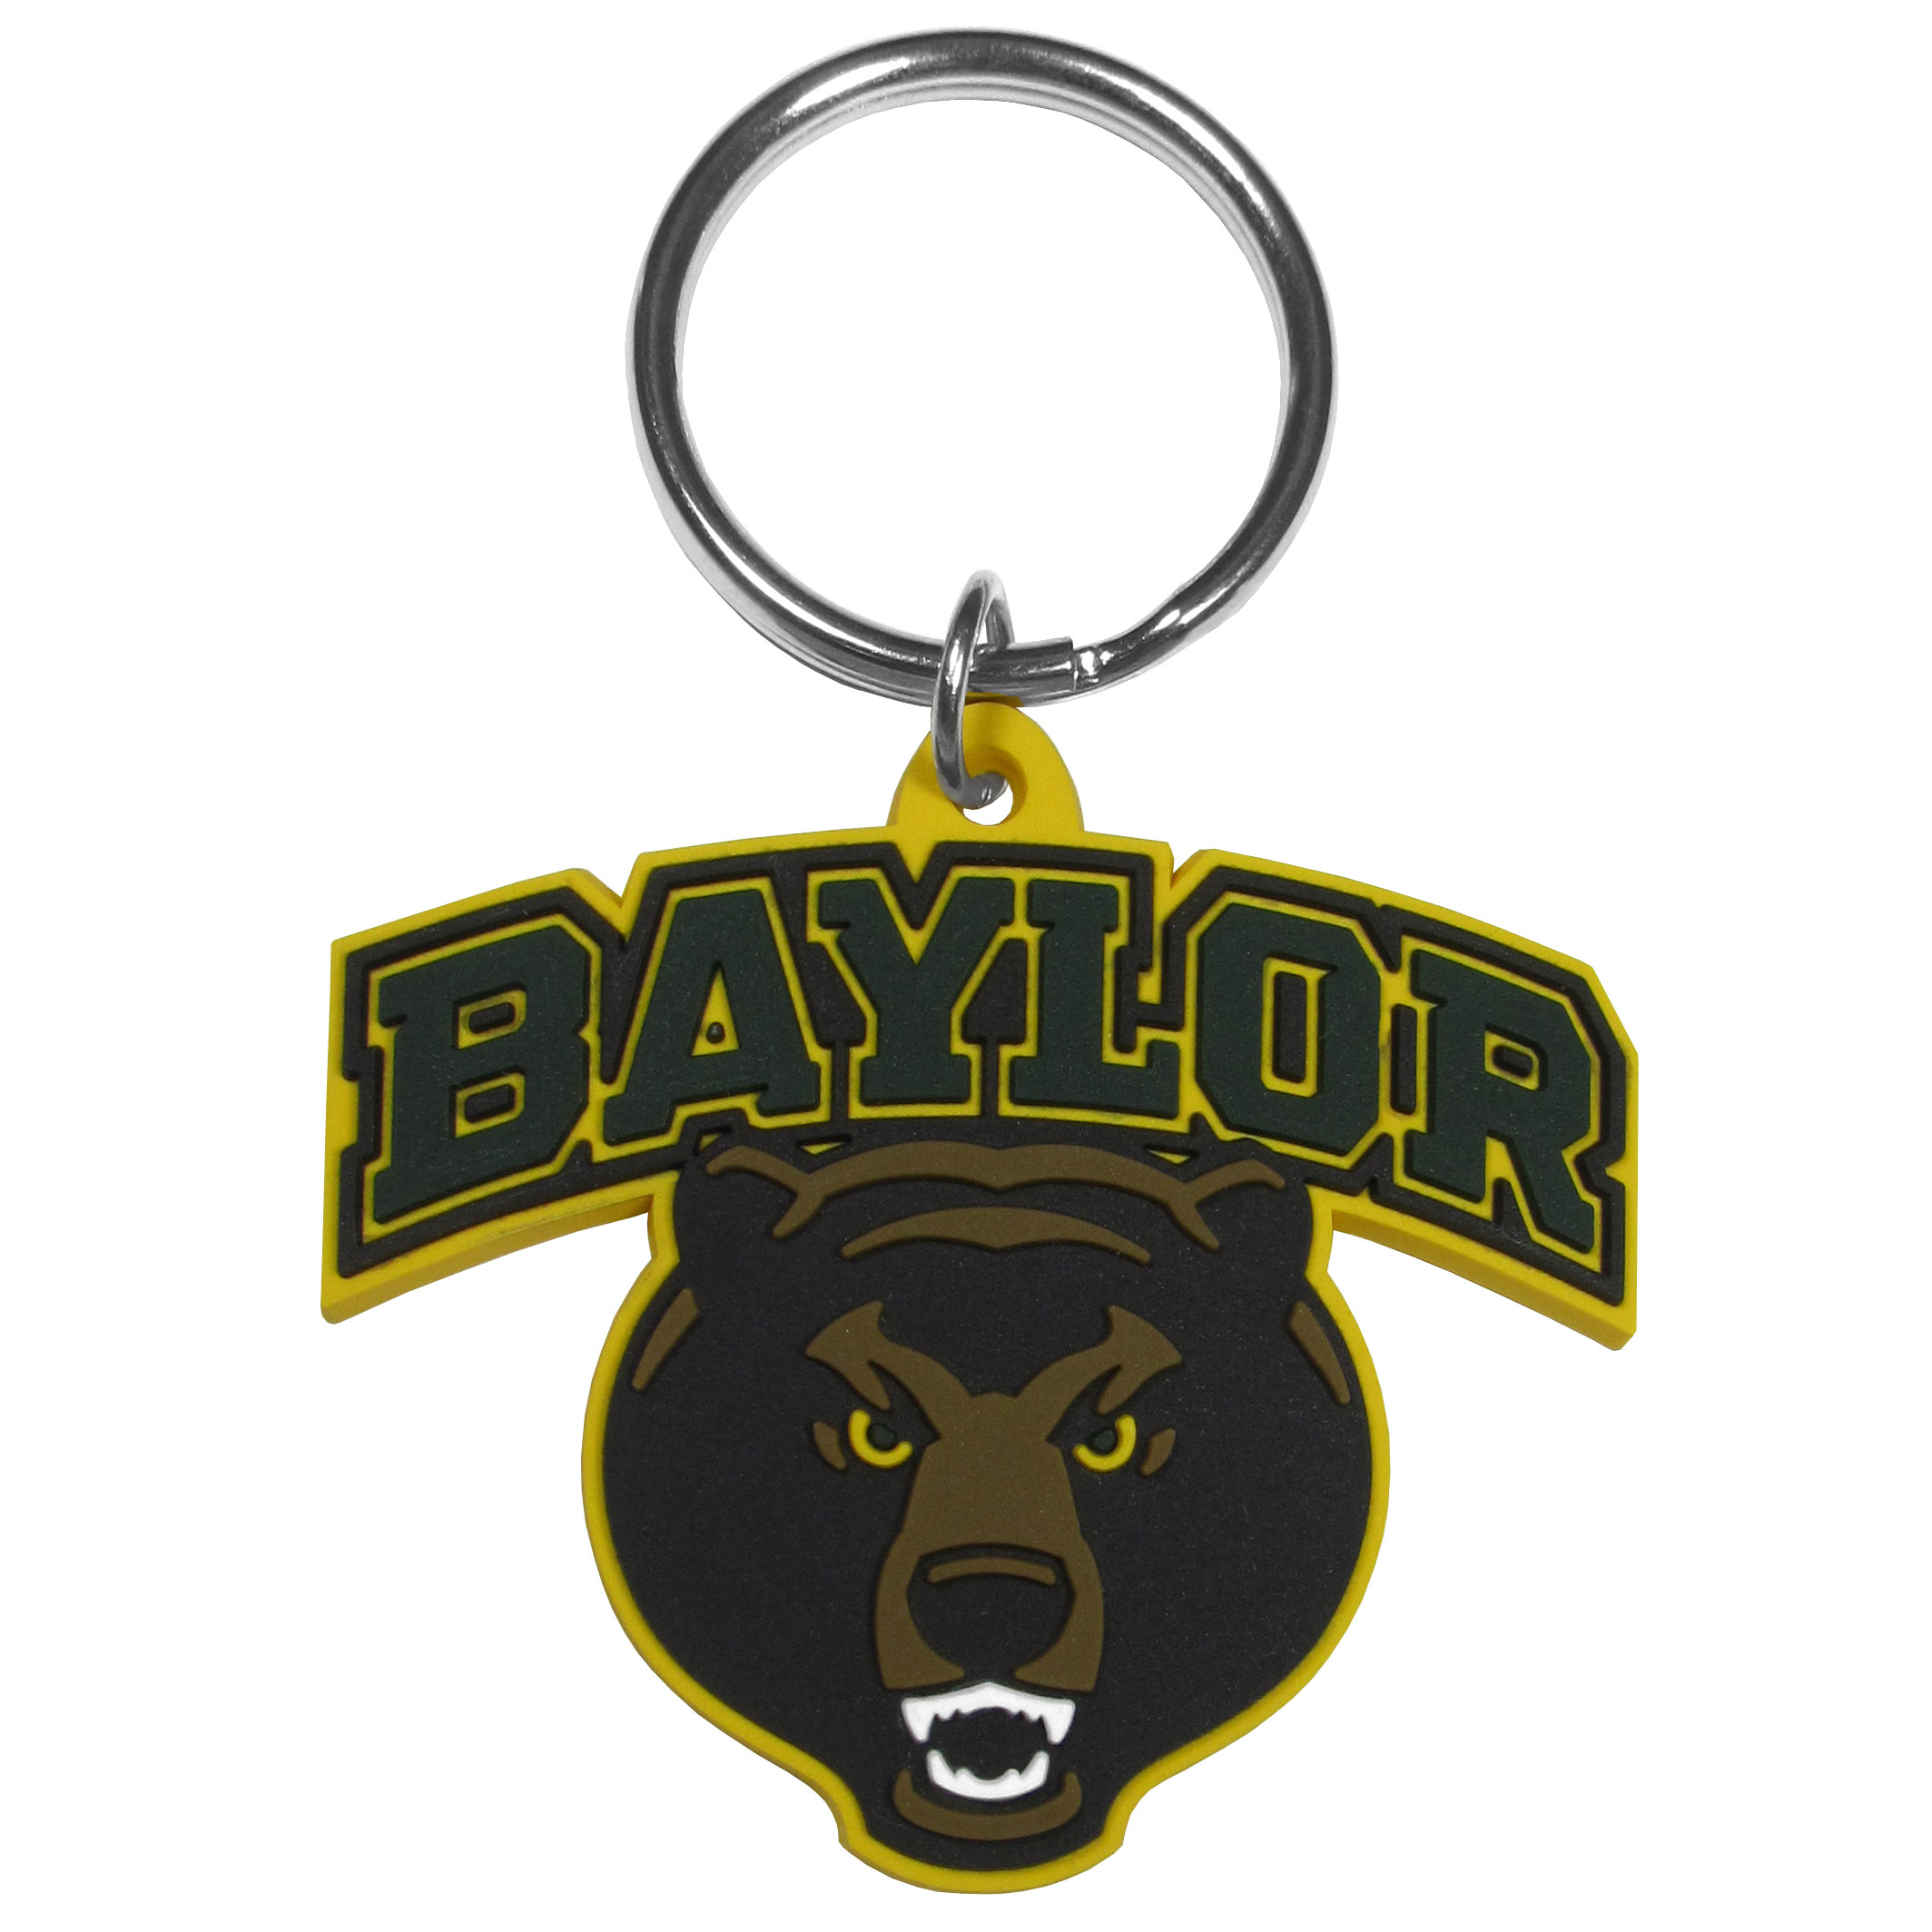 Baylor Bears Flex Key Chain - Our fun, flexible Baylor Bears key chains are made of a rubbery material that is layered to create a bright, textured logo.